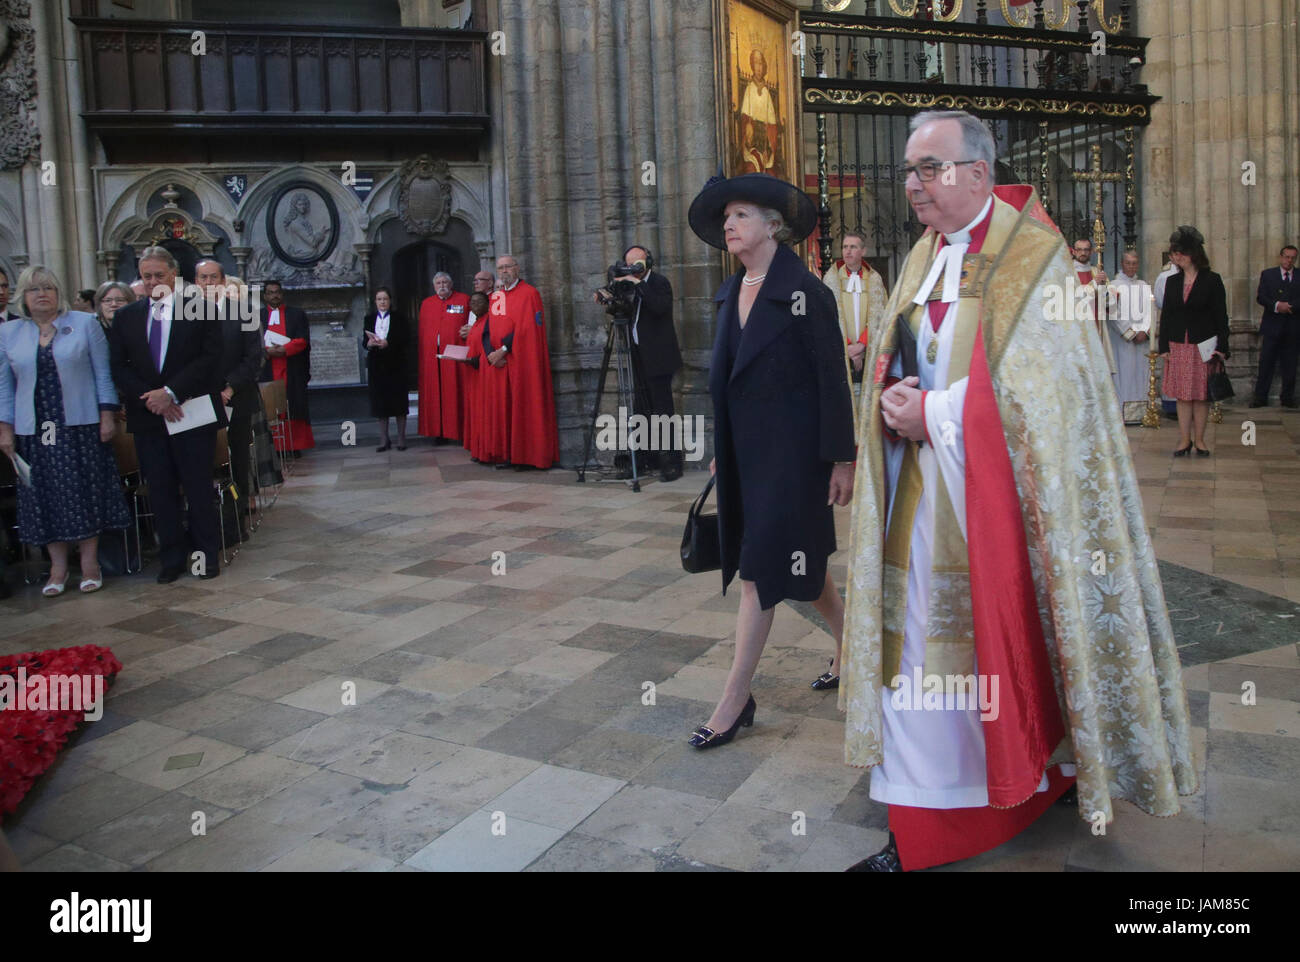 Penelope Keith in Westminister Abbey, London ahead of Service of Thanksgiving for the Life and Work of the Ronnie - Stock Image